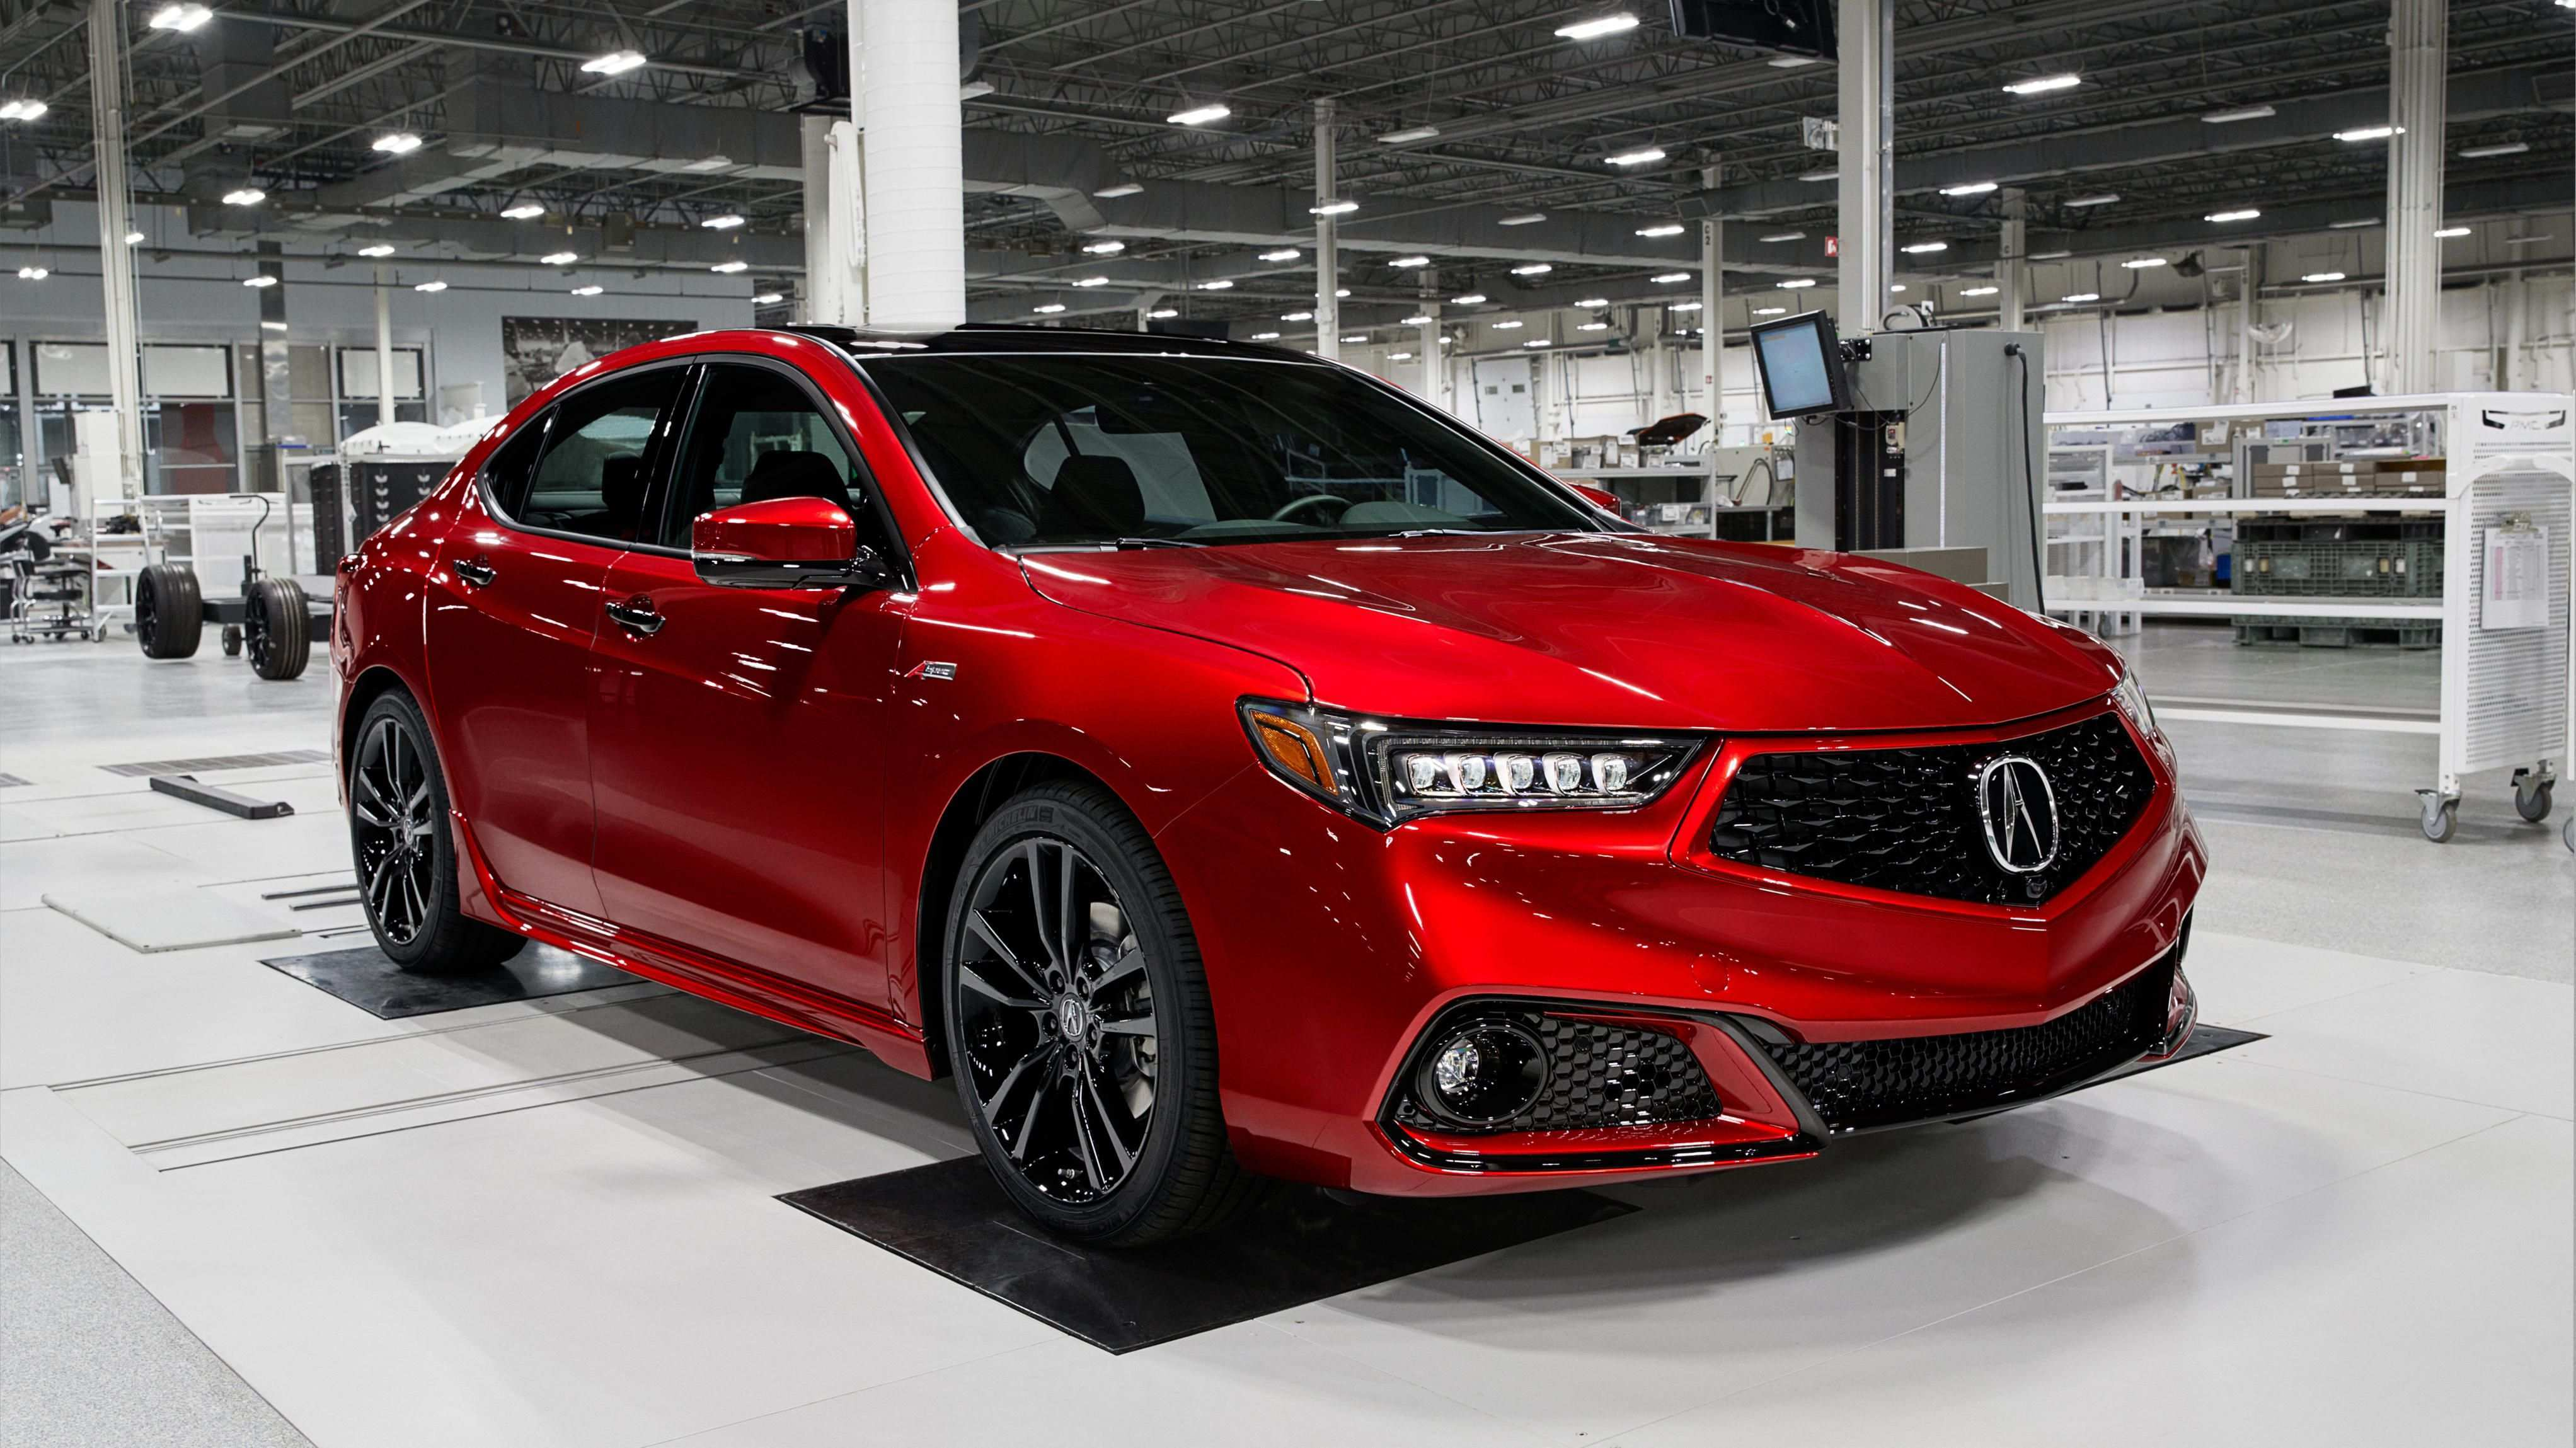 49 Great When Does The 2020 Acura Tlx Come Out Speed Test by When Does The 2020 Acura Tlx Come Out